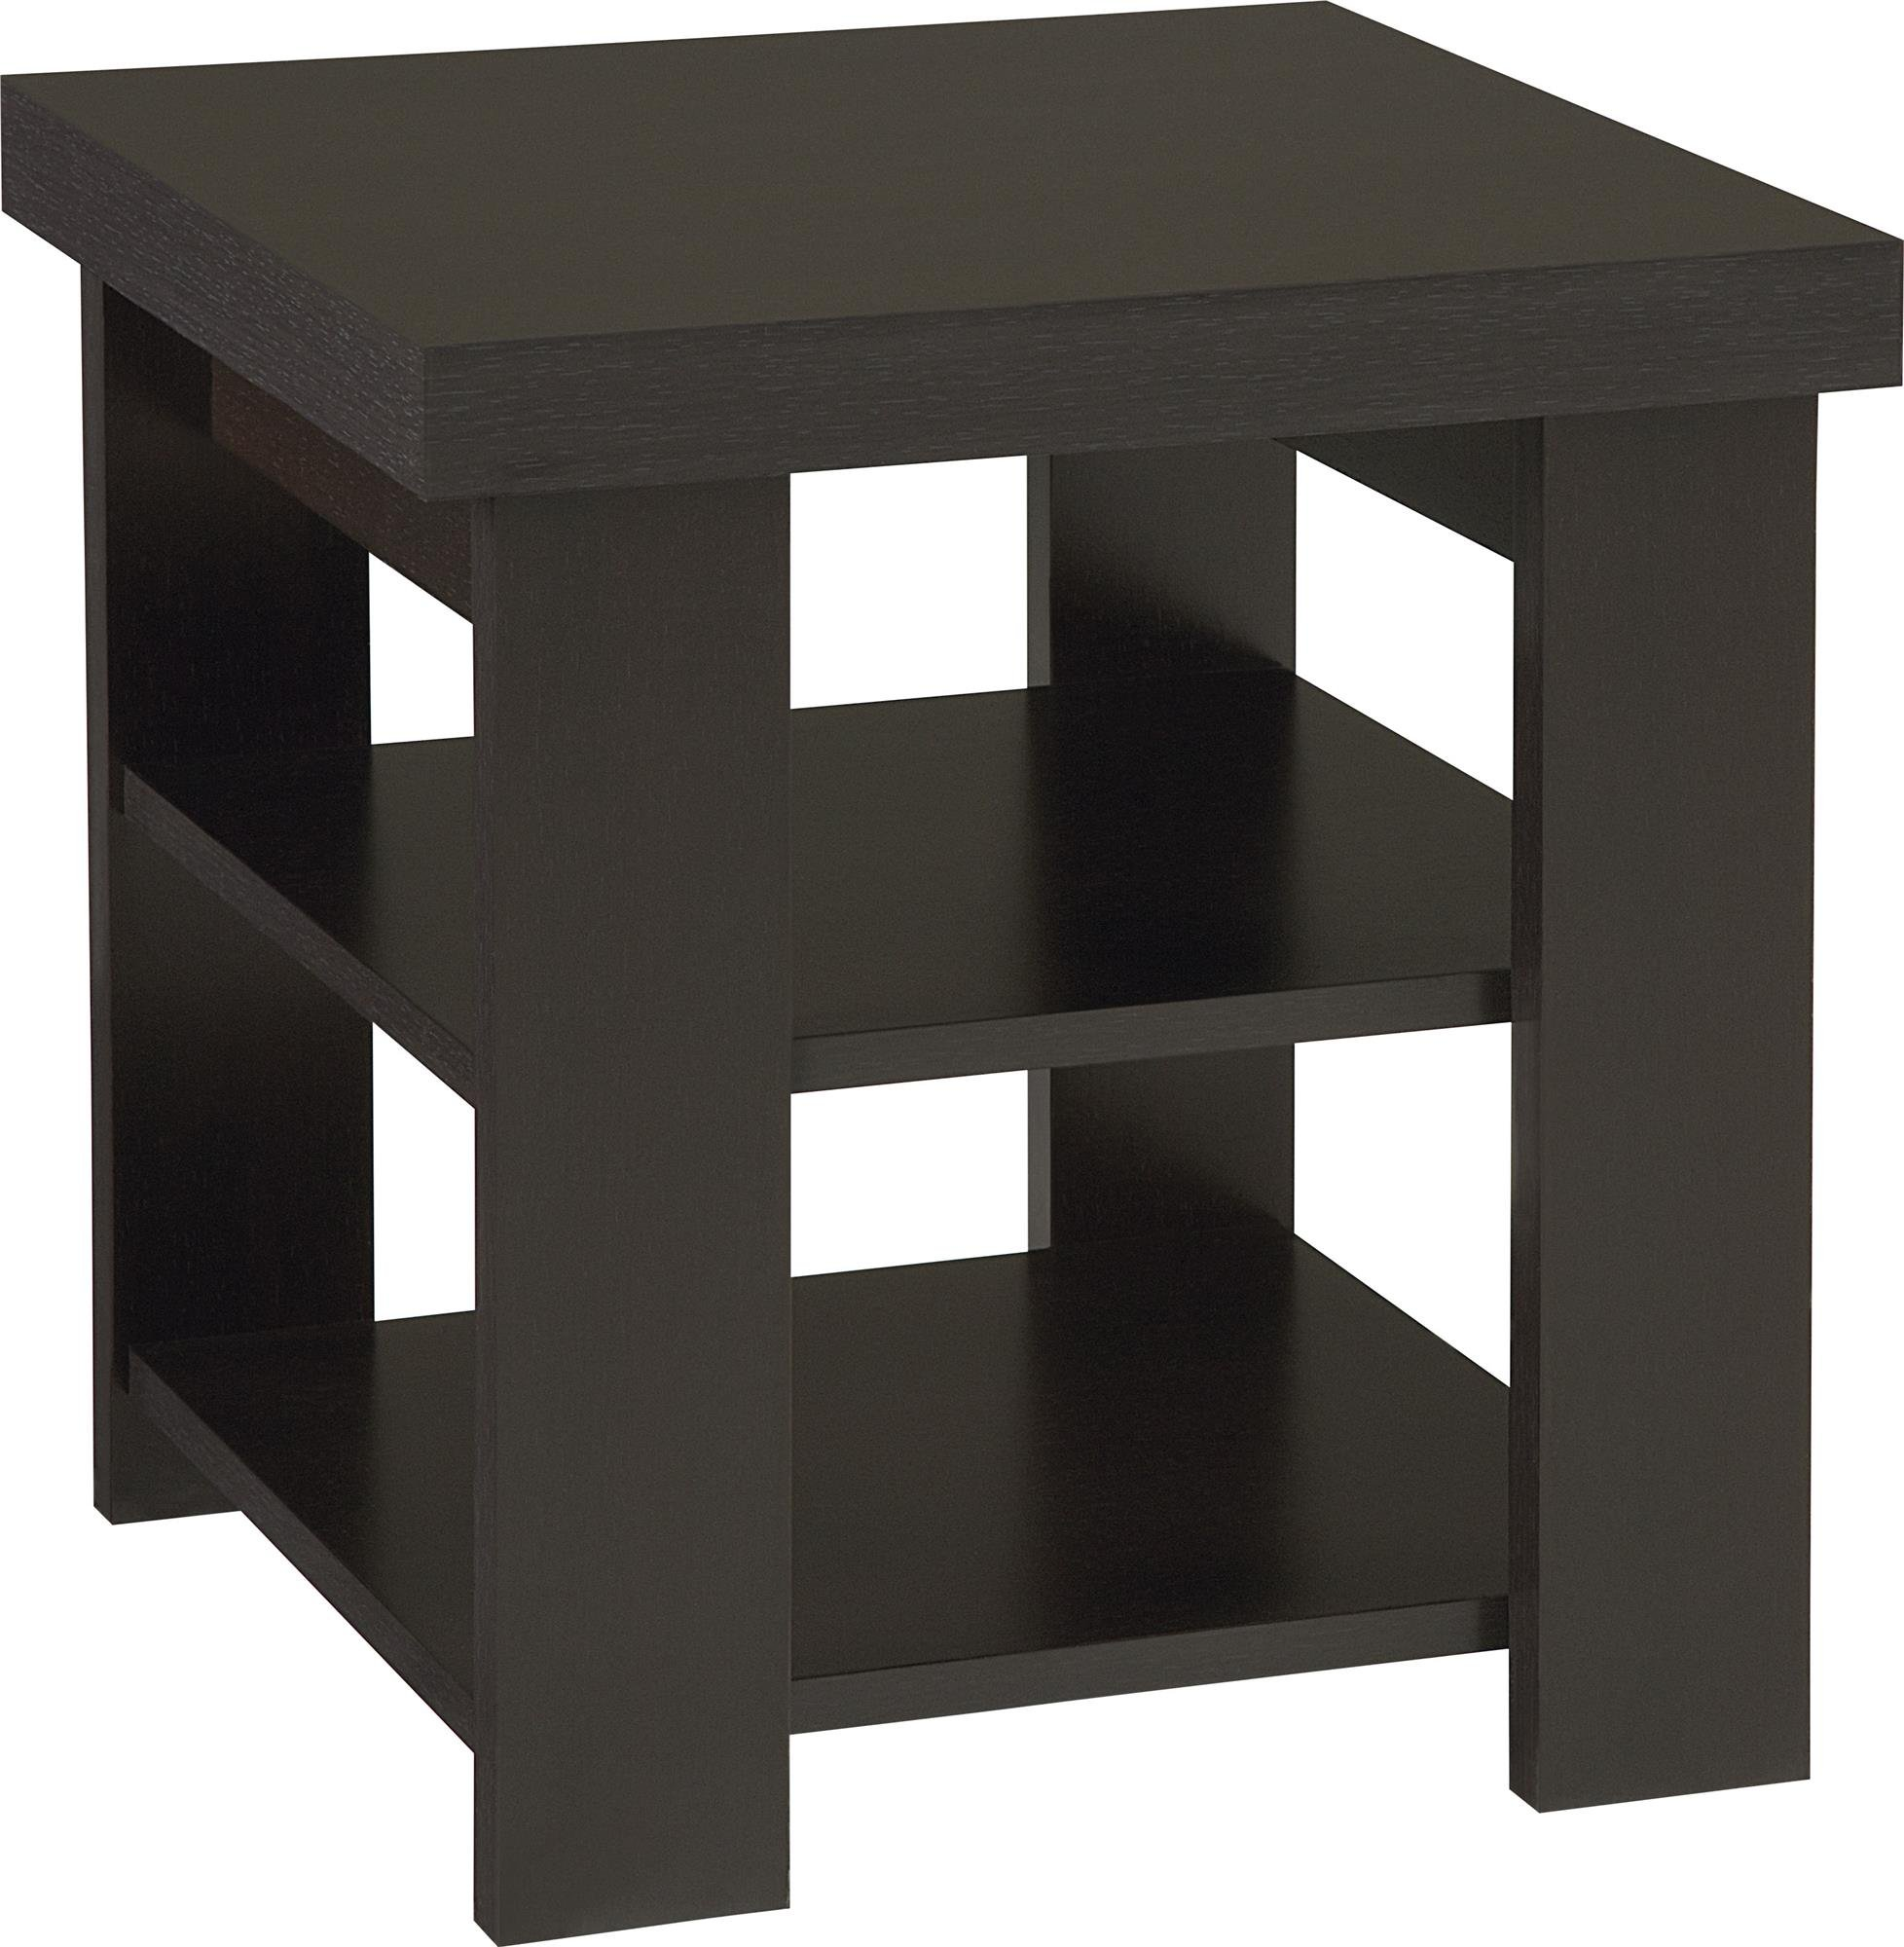 Ameriwood Home 5188012YCOM Jensen End Table, Espresso